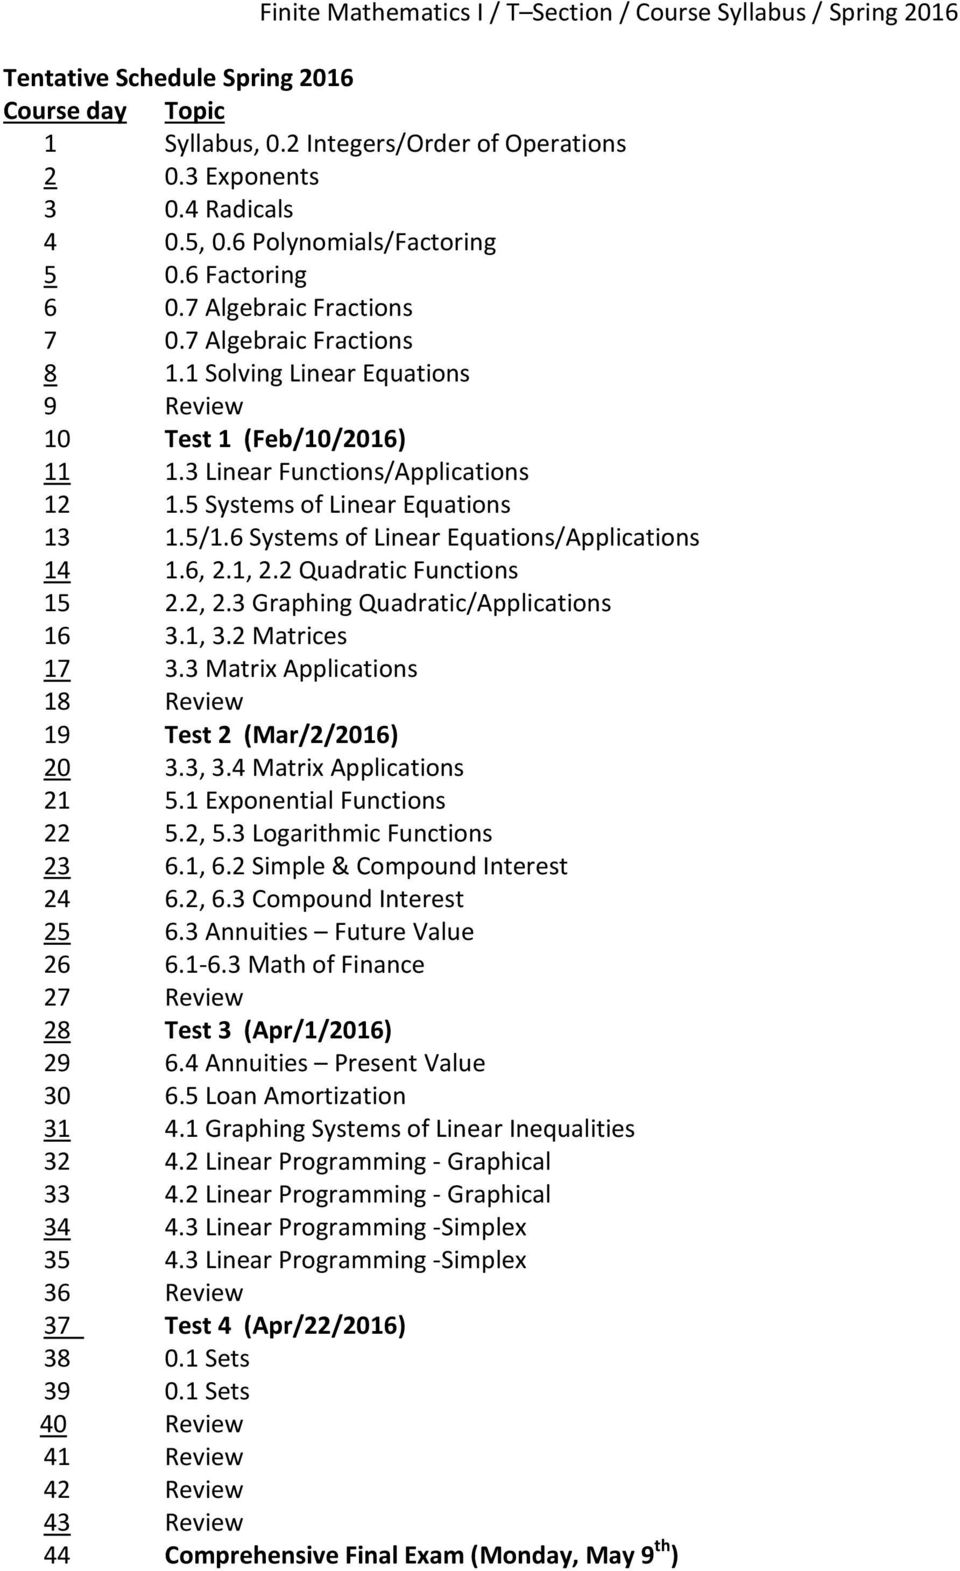 6 Systems of Linear Equations/Applications 14 1.6, 2.1, 2.2 Quadratic Functions 15 2.2, 2.3 Graphing Quadratic/Applications 16 3.1, 3.2 Matrices 17 3.